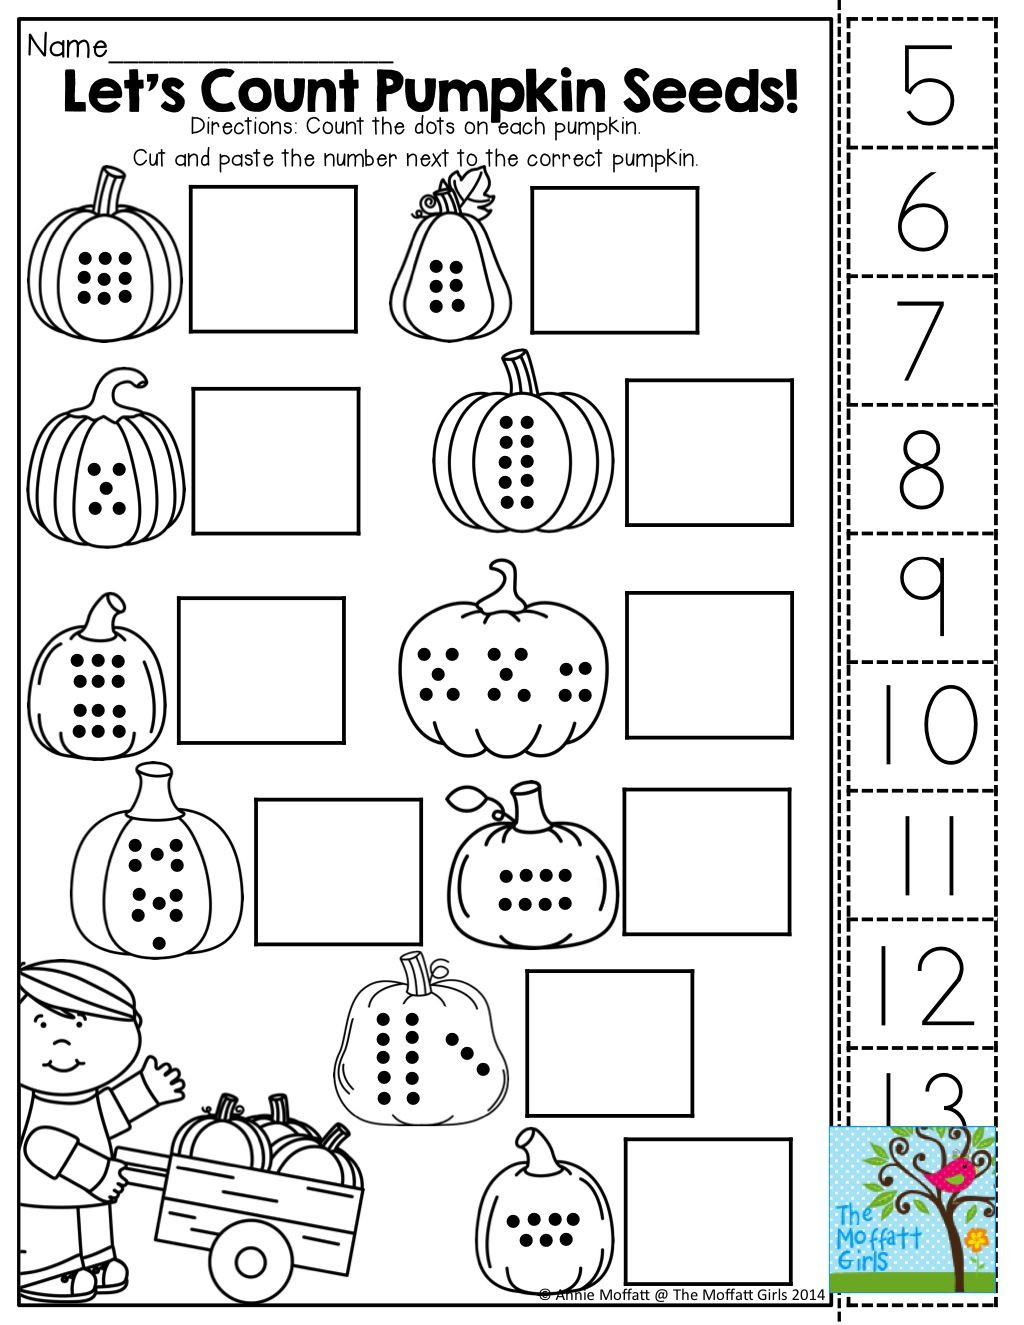 October Fun Filled Learning Resources